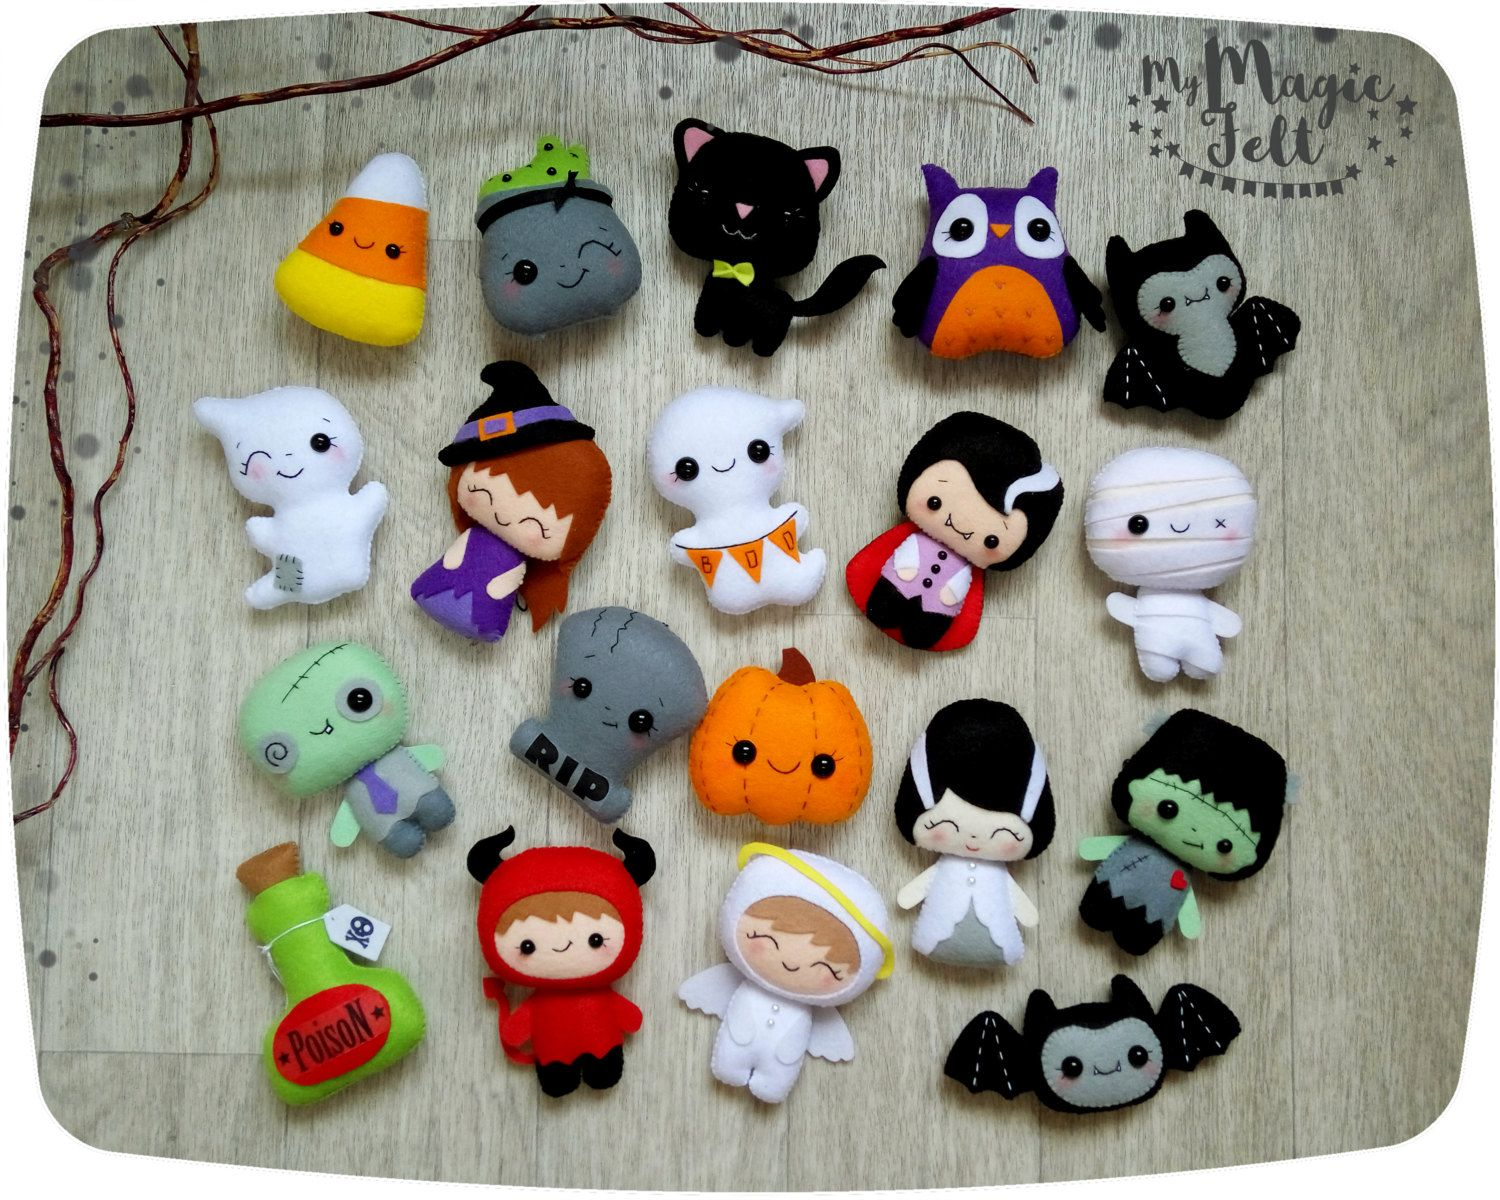 halloween ornaments set of 15 cute halloween ornament felt halloween decor felt toys halloween decorations party - Cute Halloween Decor